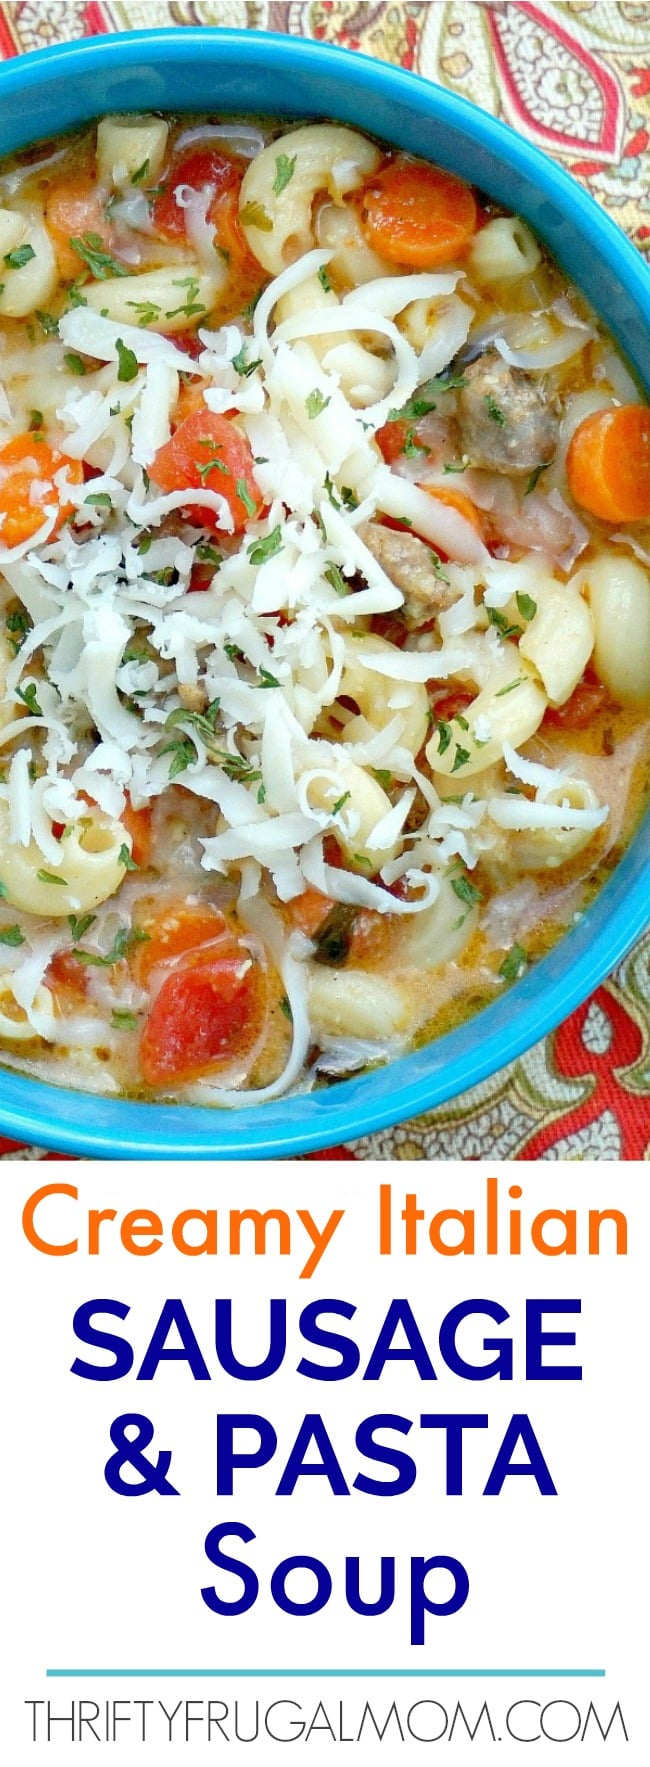 Italian Sausage and Pasta Soup